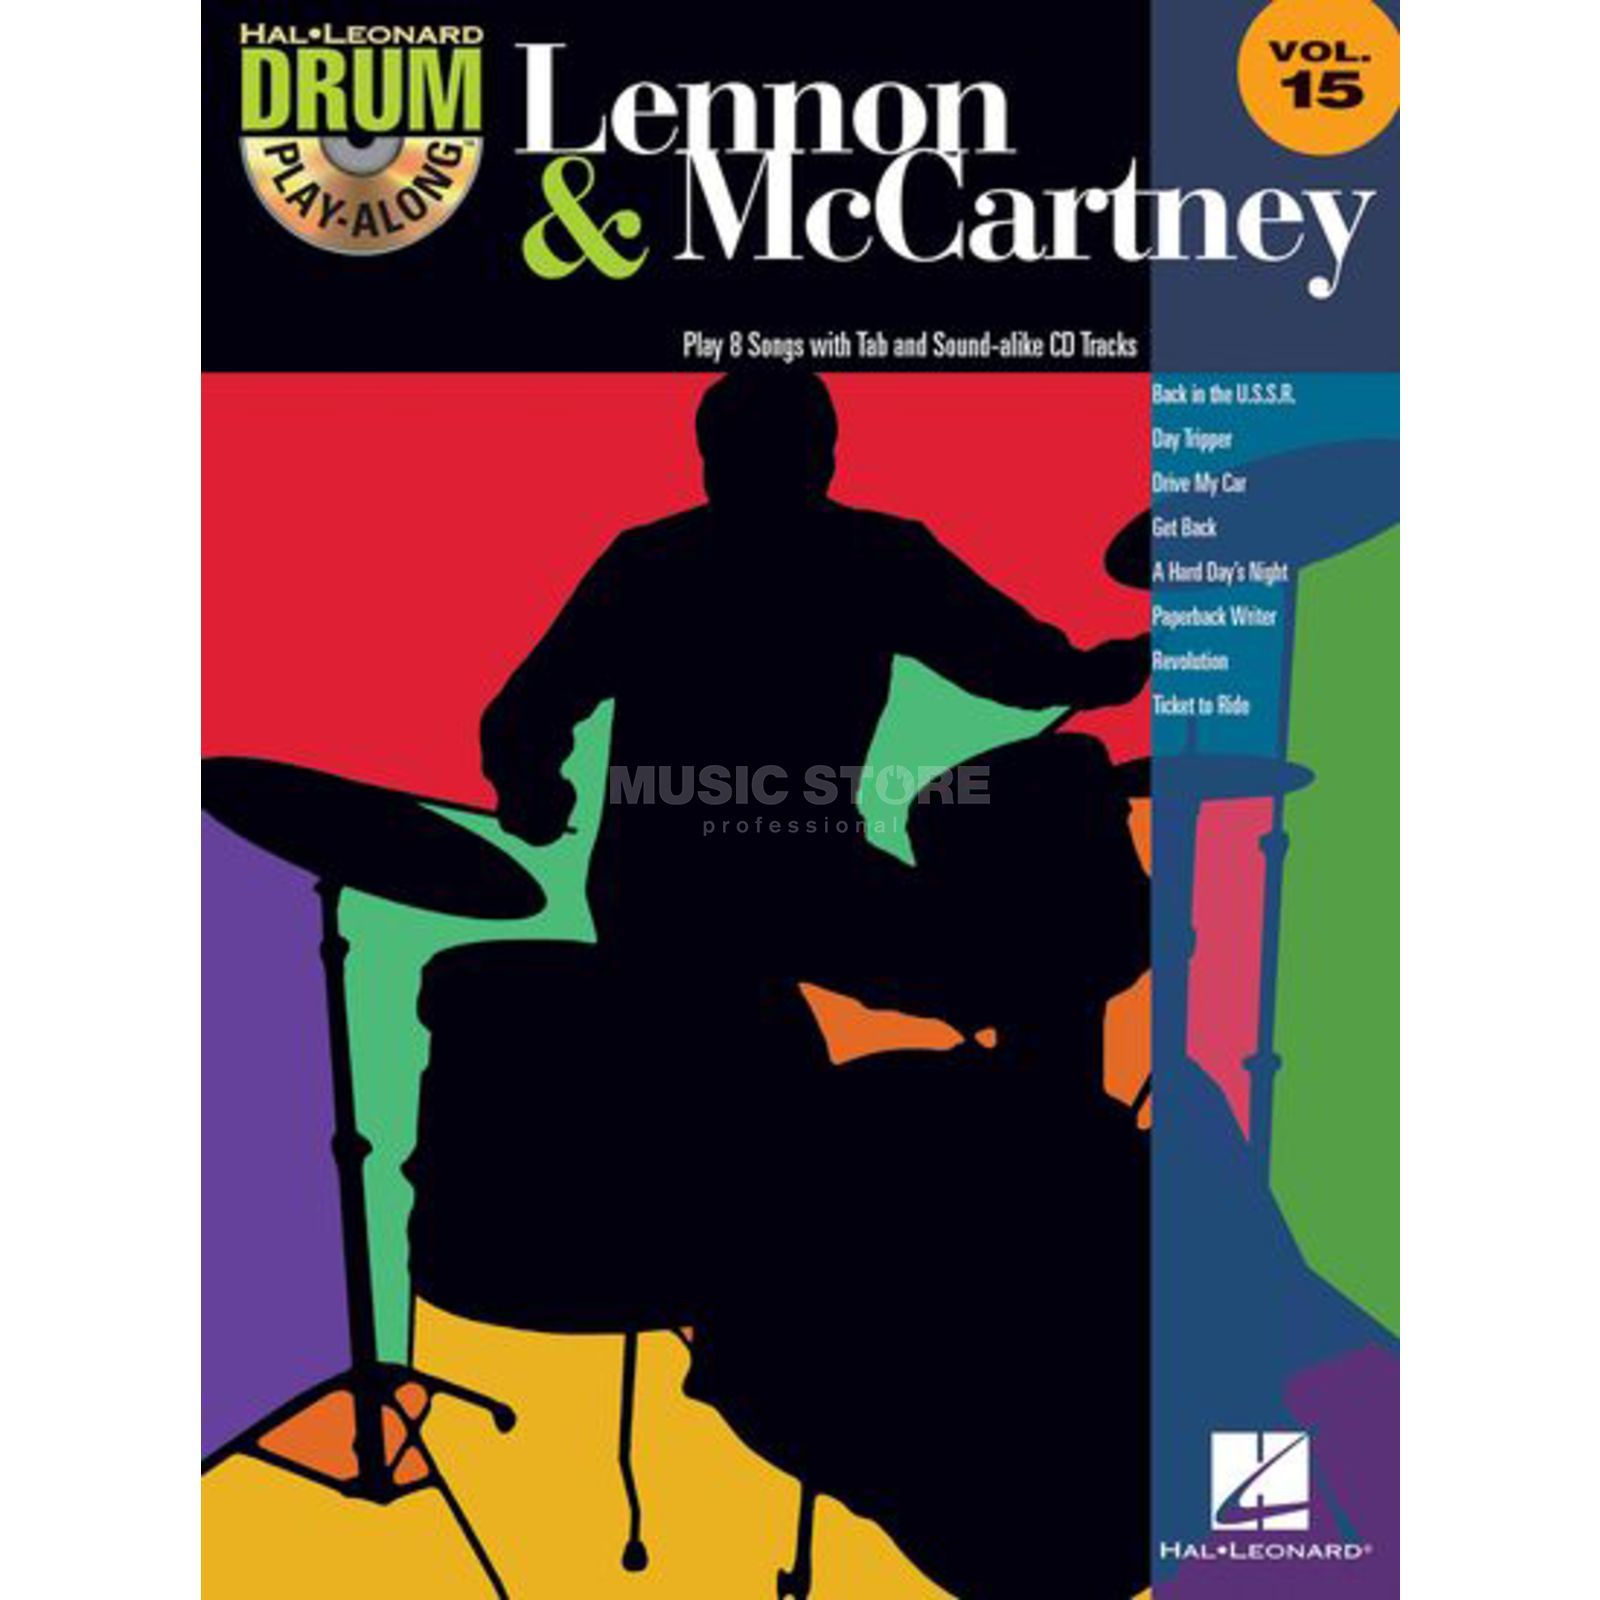 Hal Leonard Drum Play-Along: Lennon & Mc Cartney Vol. 15 Produktbild